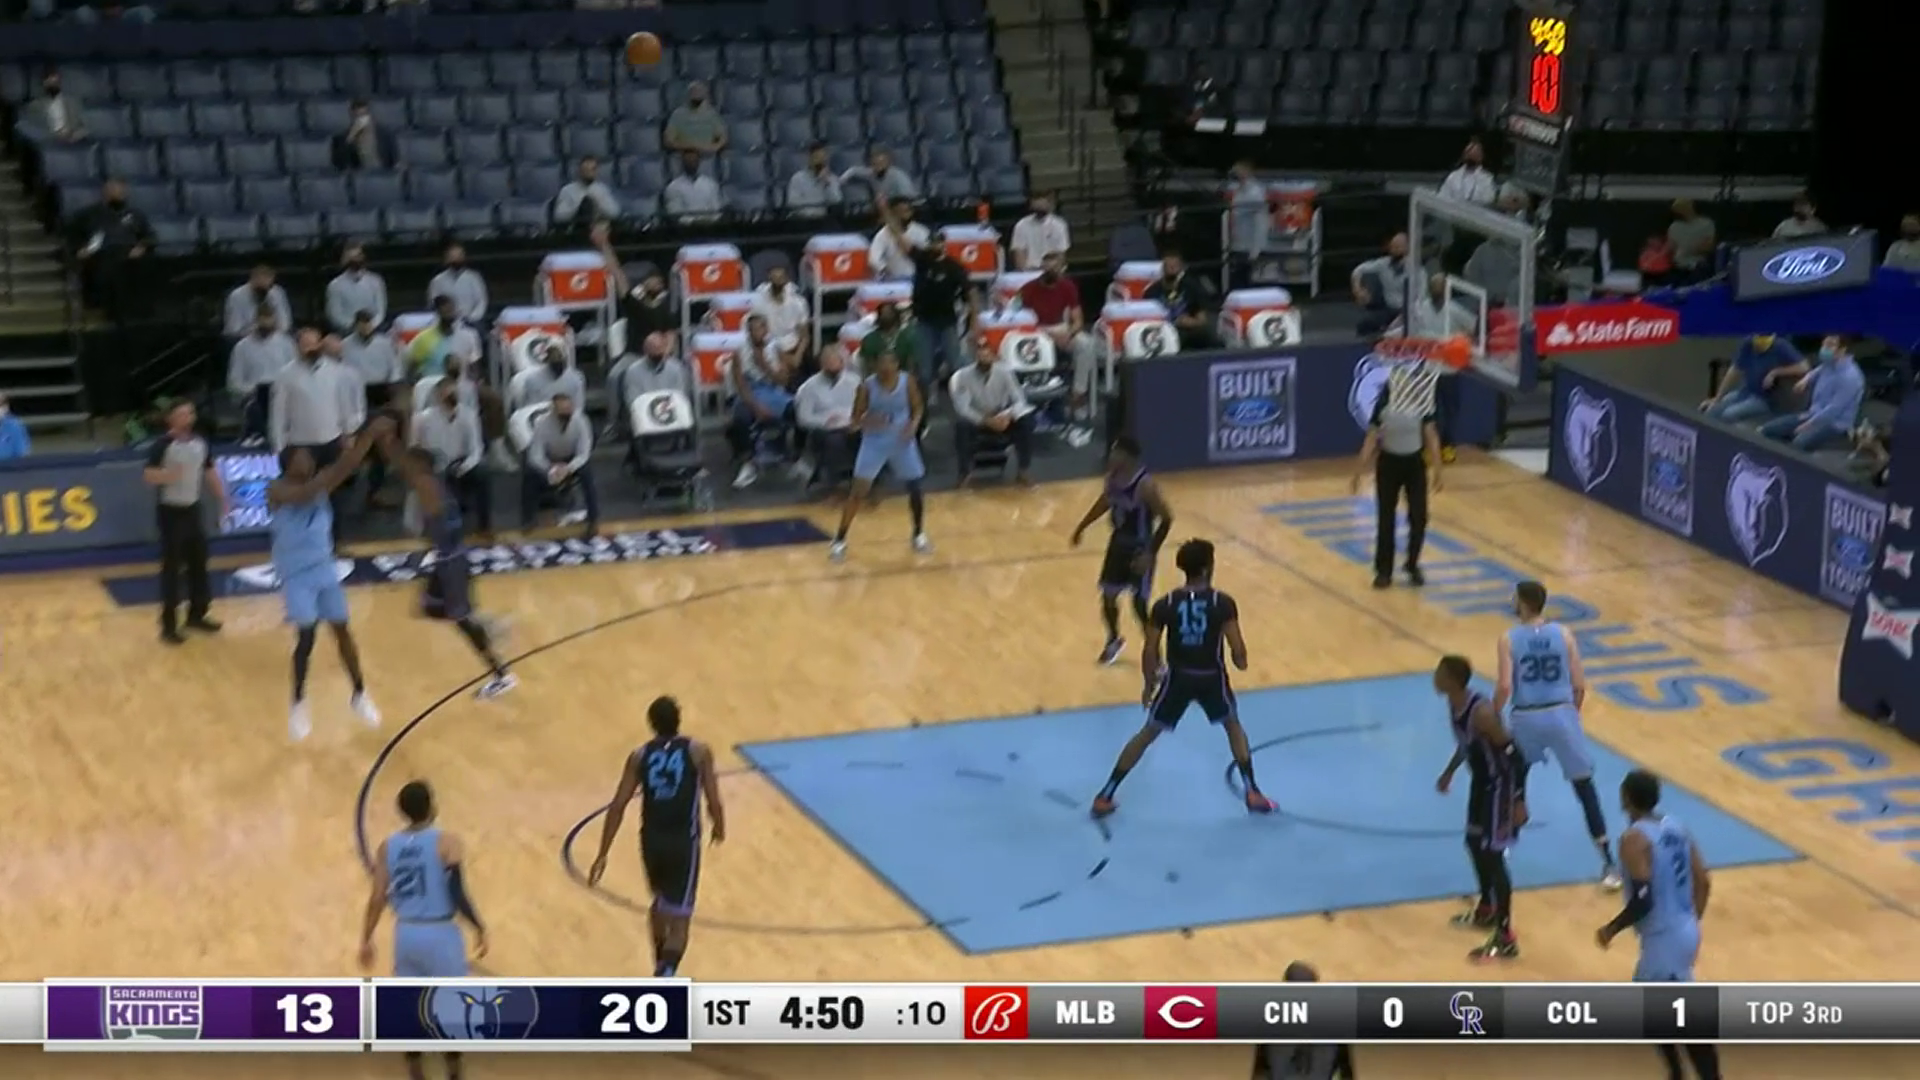 Justise Winslow drains an open three